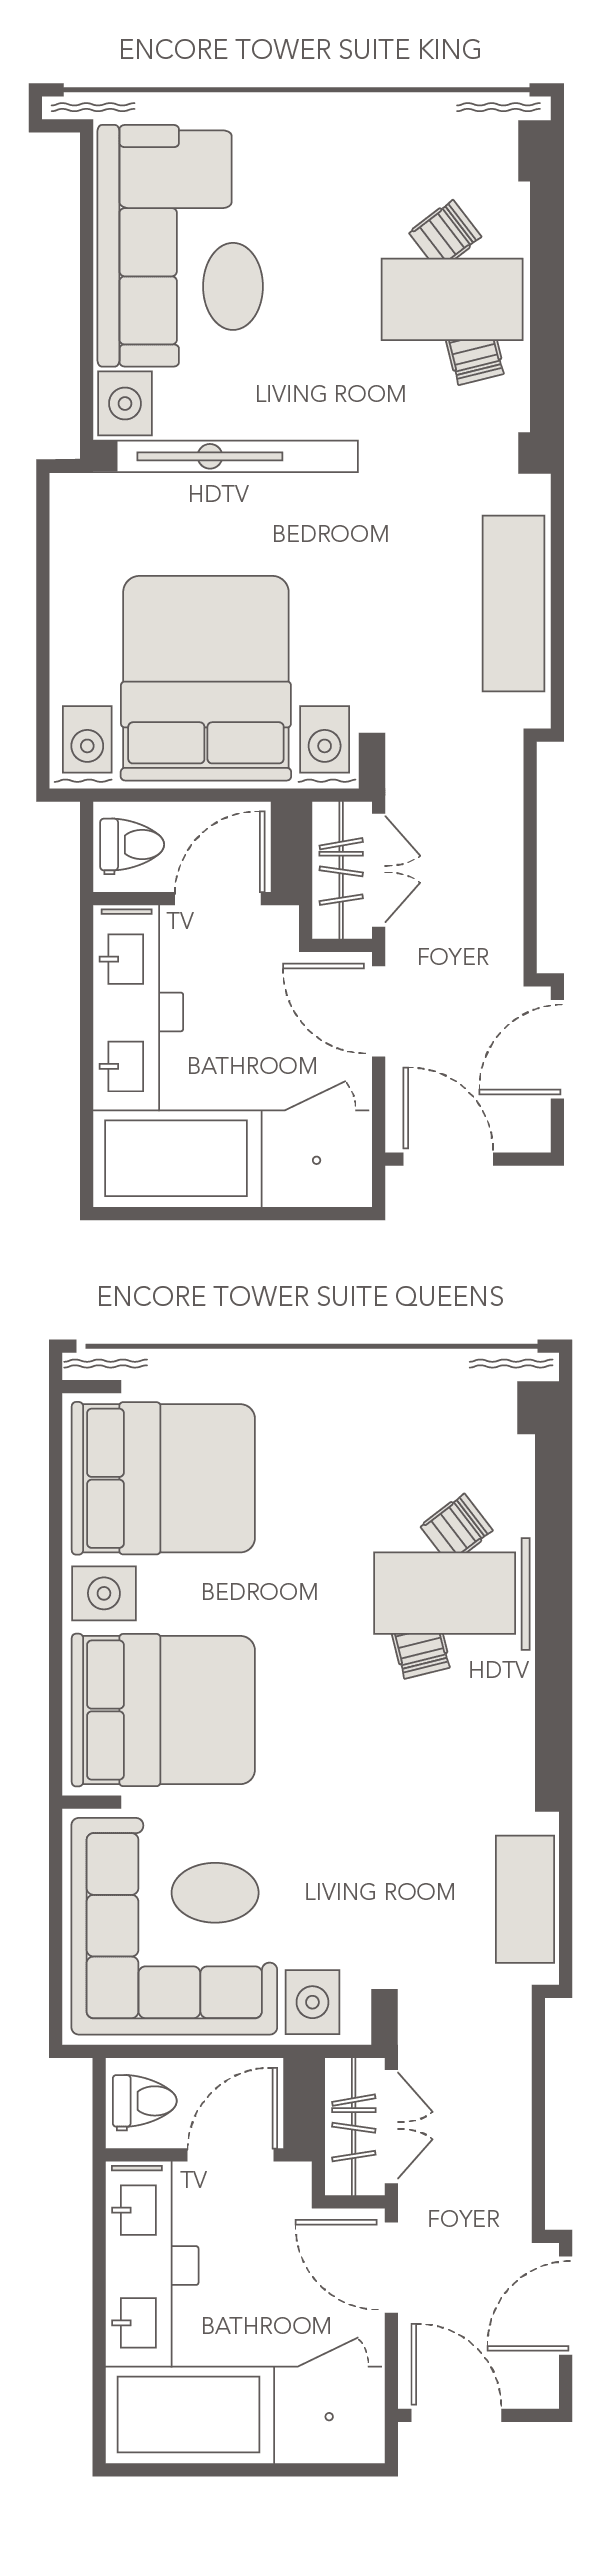 Encore Tower Suite King Queen